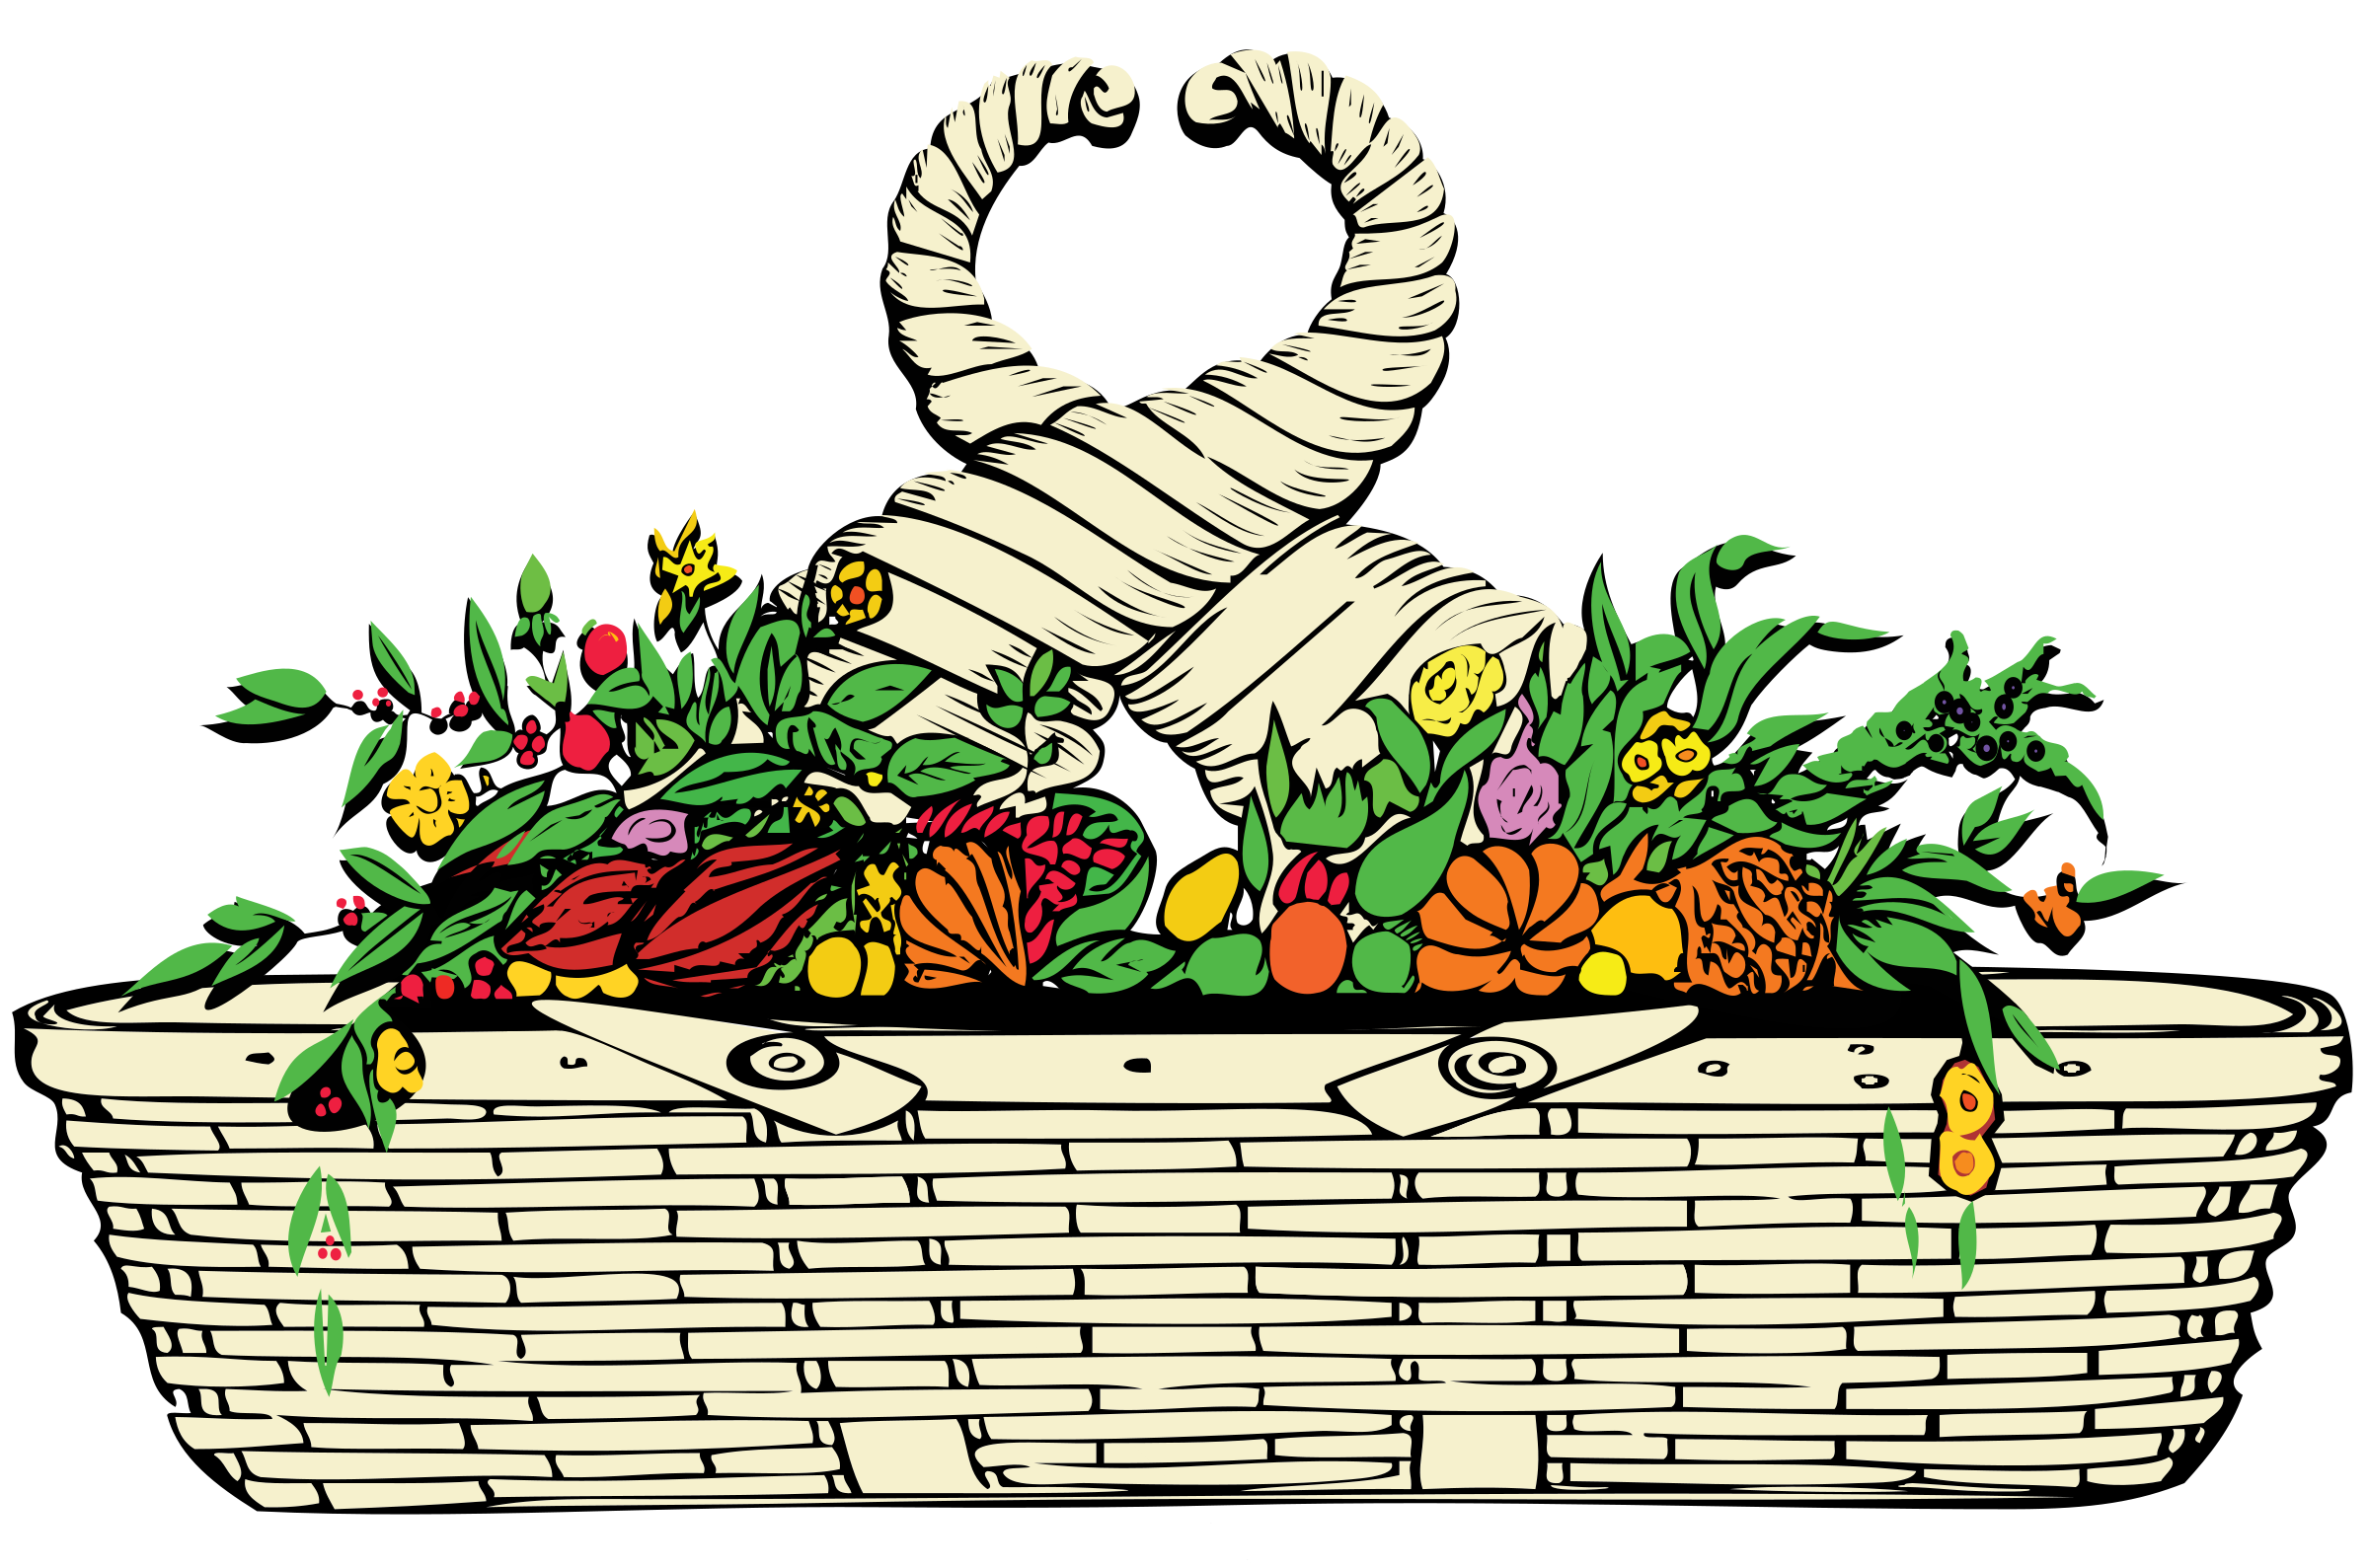 Basket of Plenty by j4p4n